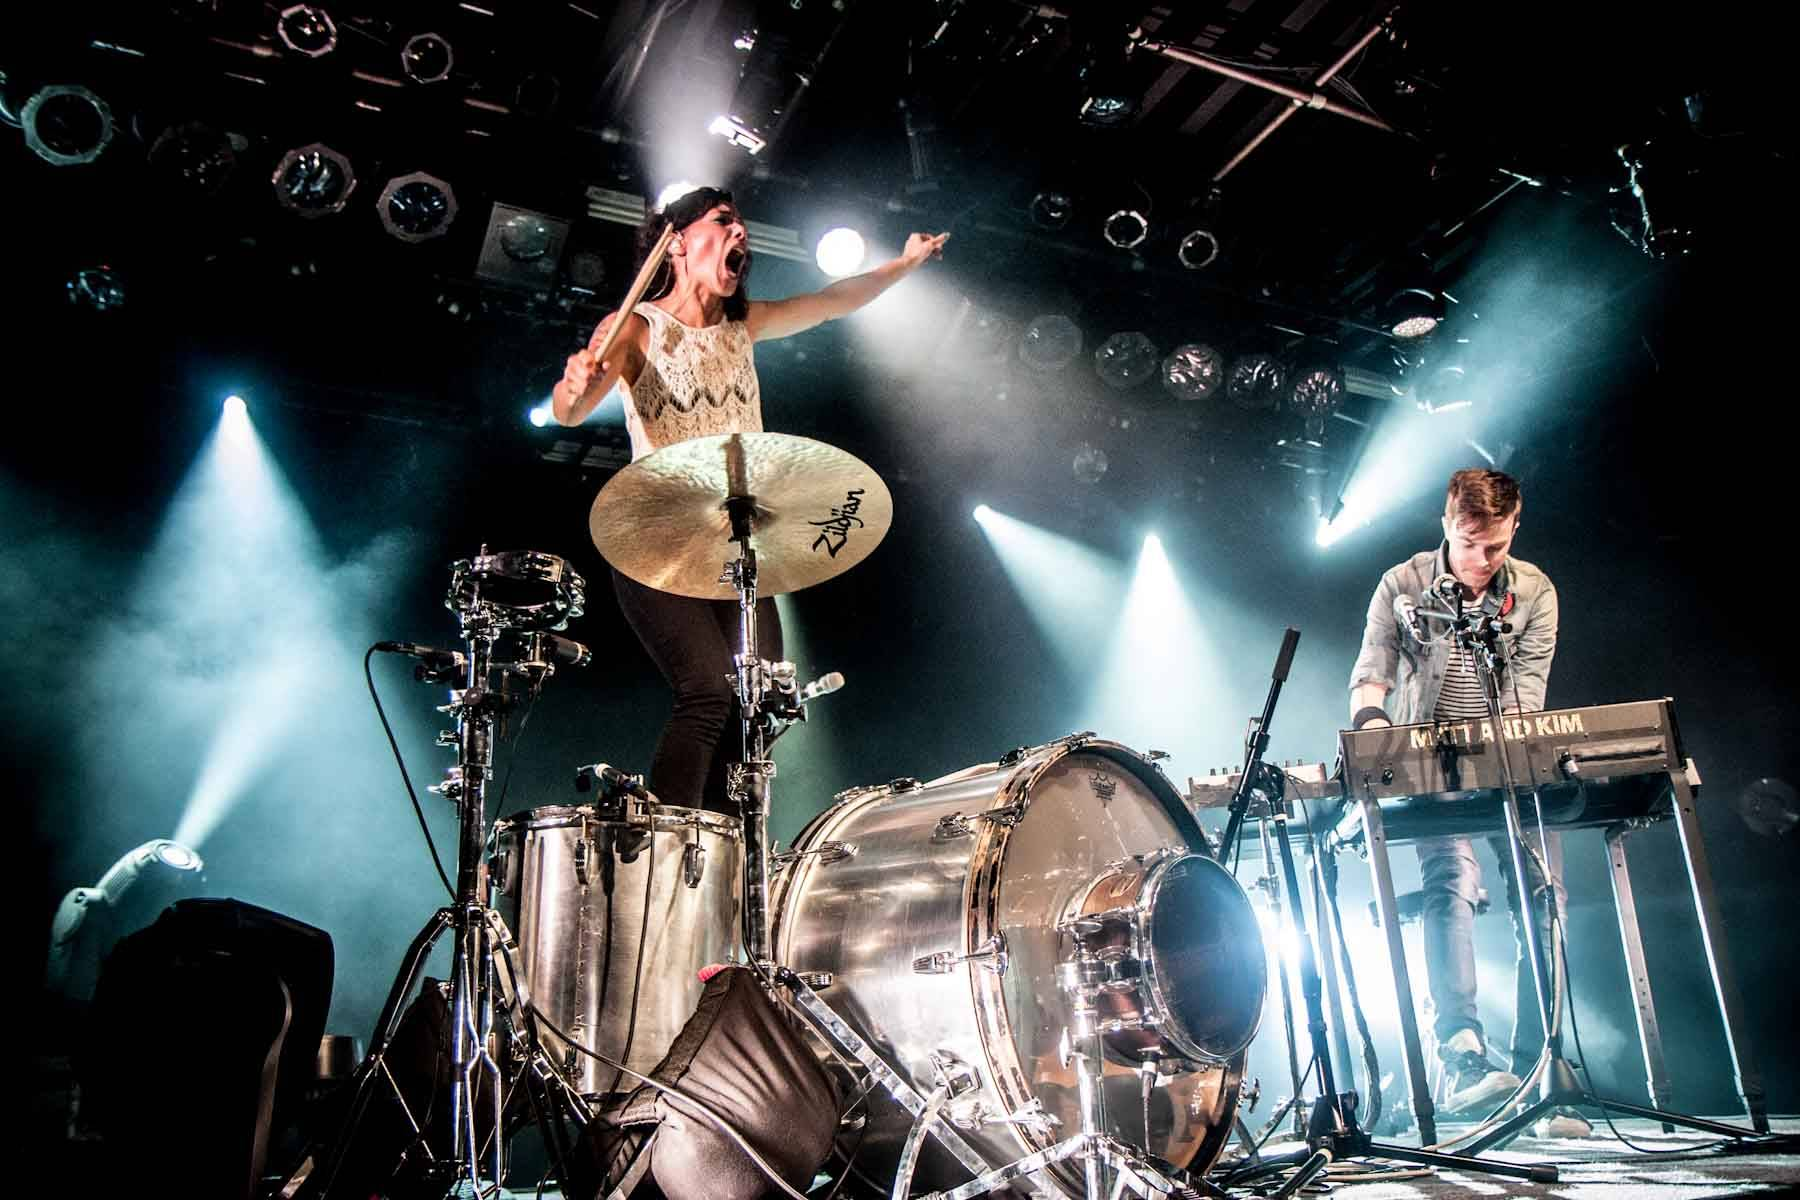 Matt and Kim at The Commodore Ballroom, Vancouver, Oct 28 2012. Christine Redmond photo.